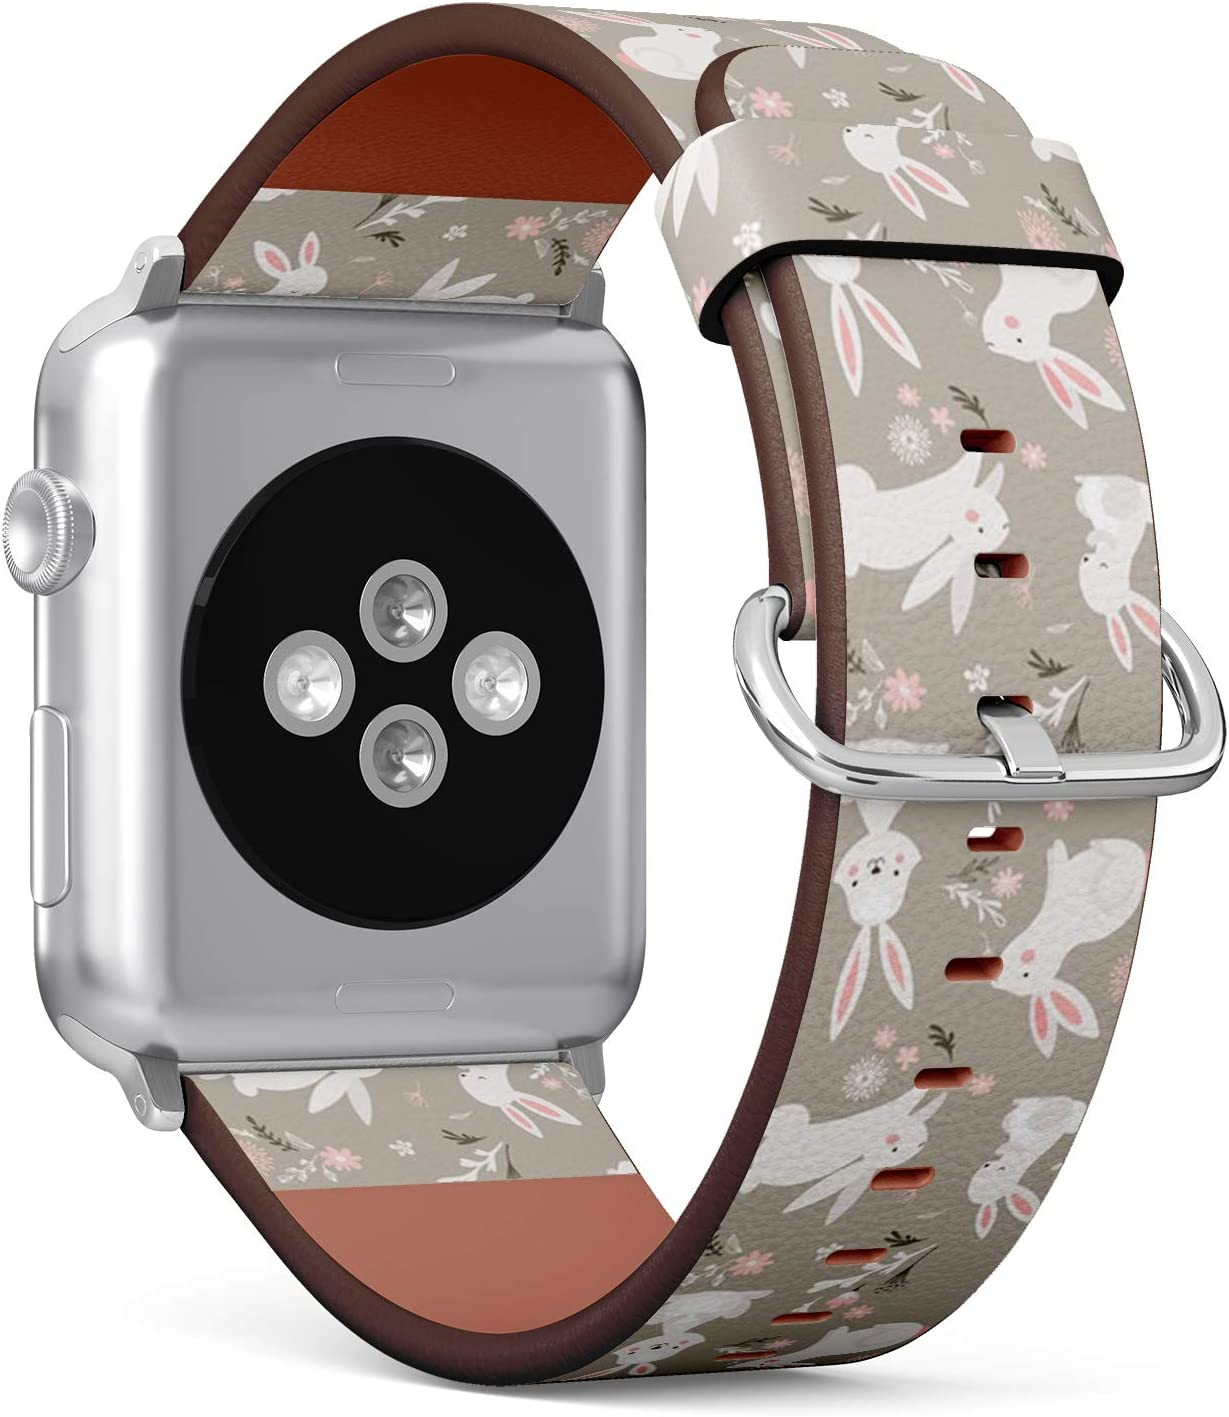 Compatible with Big Apple Watch 42mm & 44mm (All Series) Leather Watch Wrist Band Strap Bracelet with Stainless Steel Clasp and Adapters (Easter Design Bunnies)